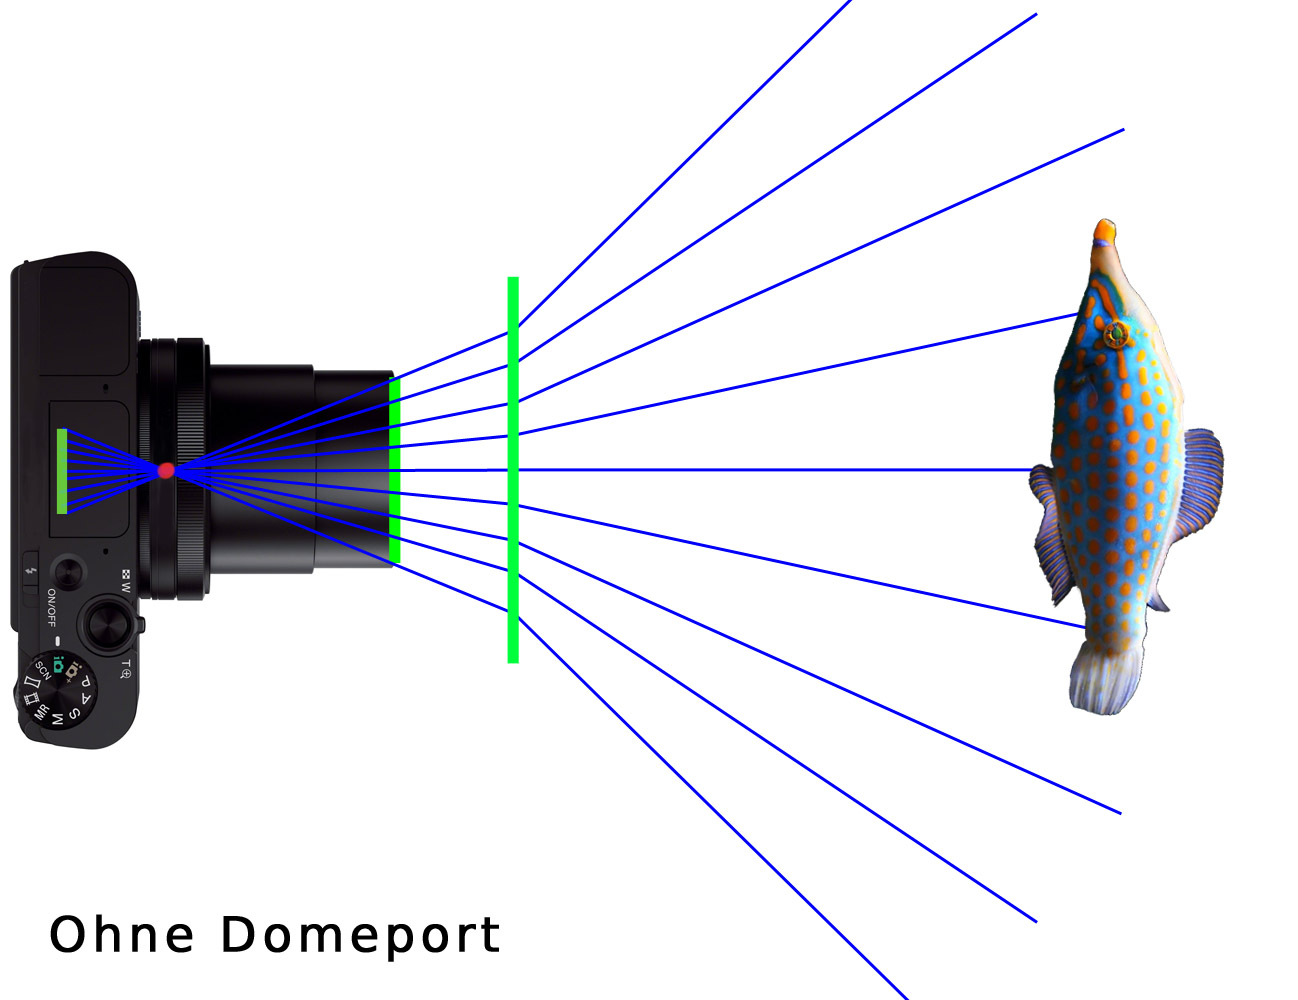 Ohne Domeport